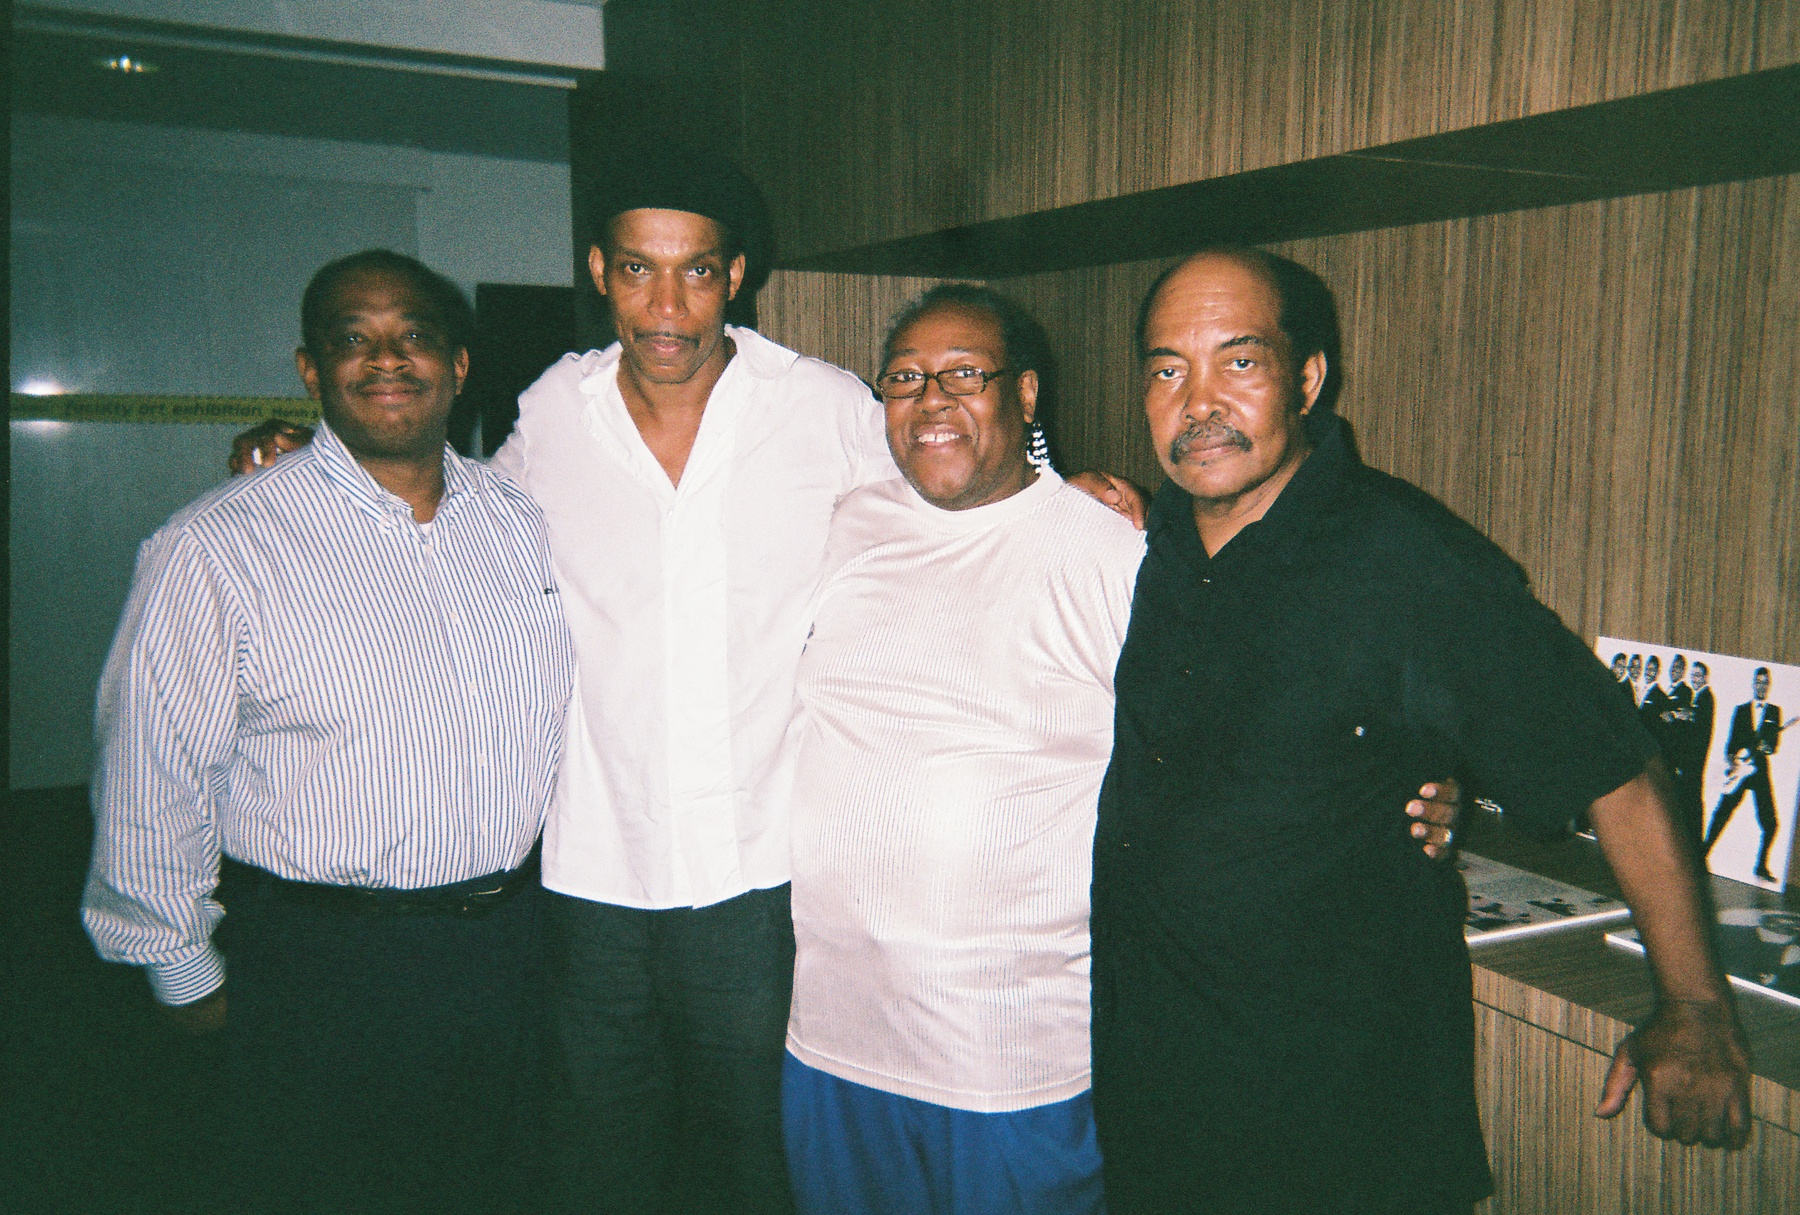 PJ WILLIS WITH CARL DAVIS JR., GREG PARKER & WILLIE HENDERSON